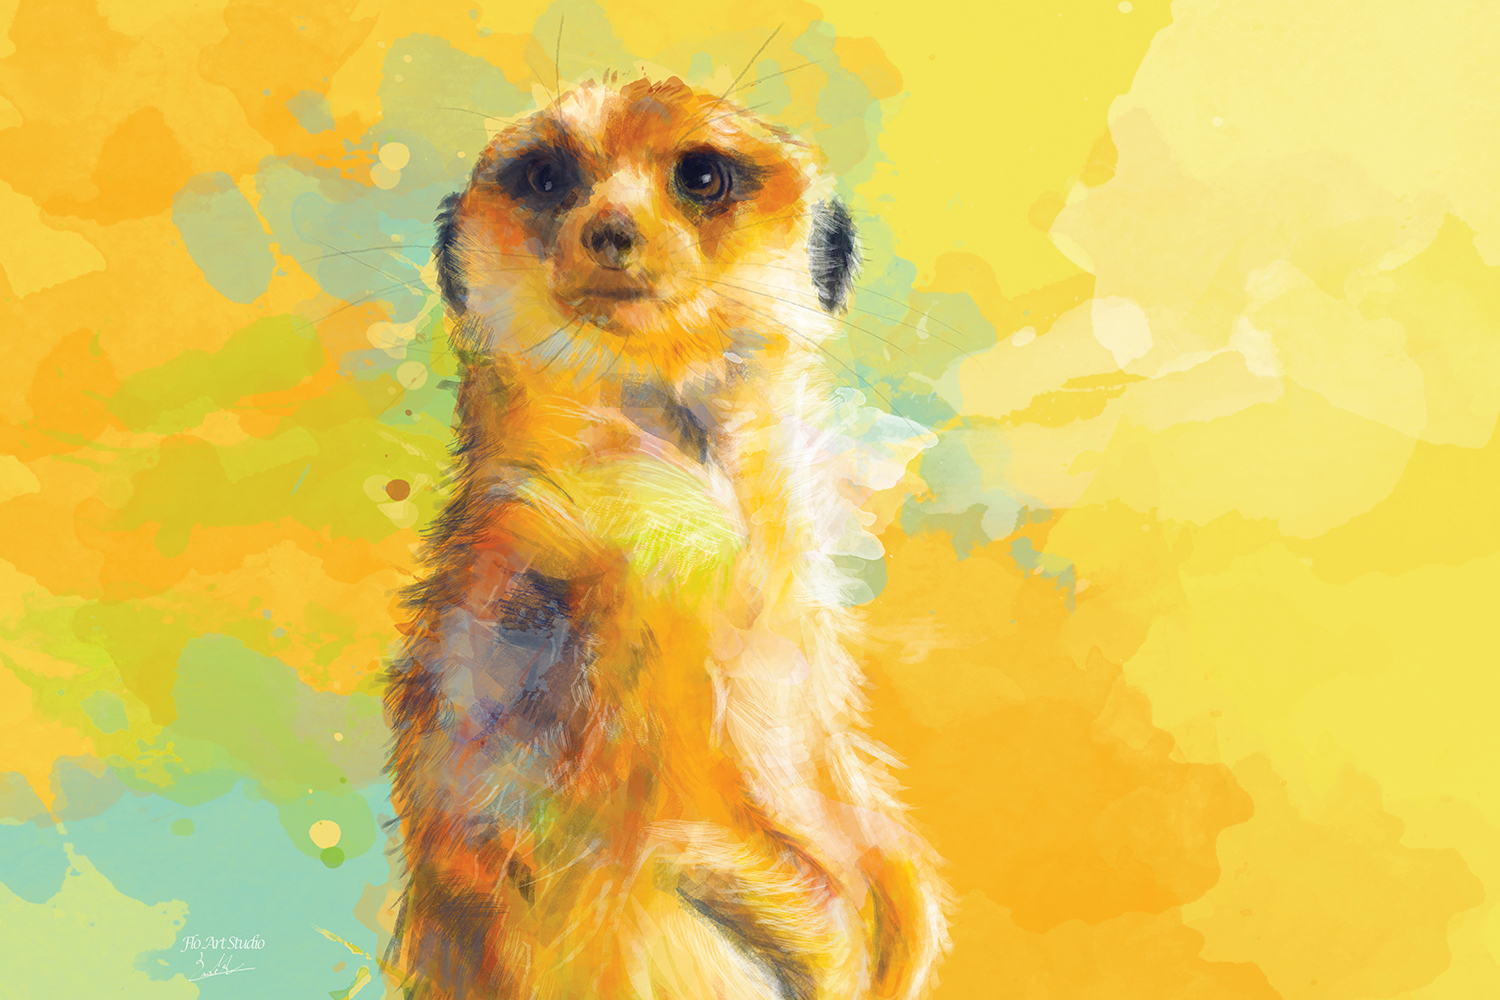 Meerkat standing against a yellow background